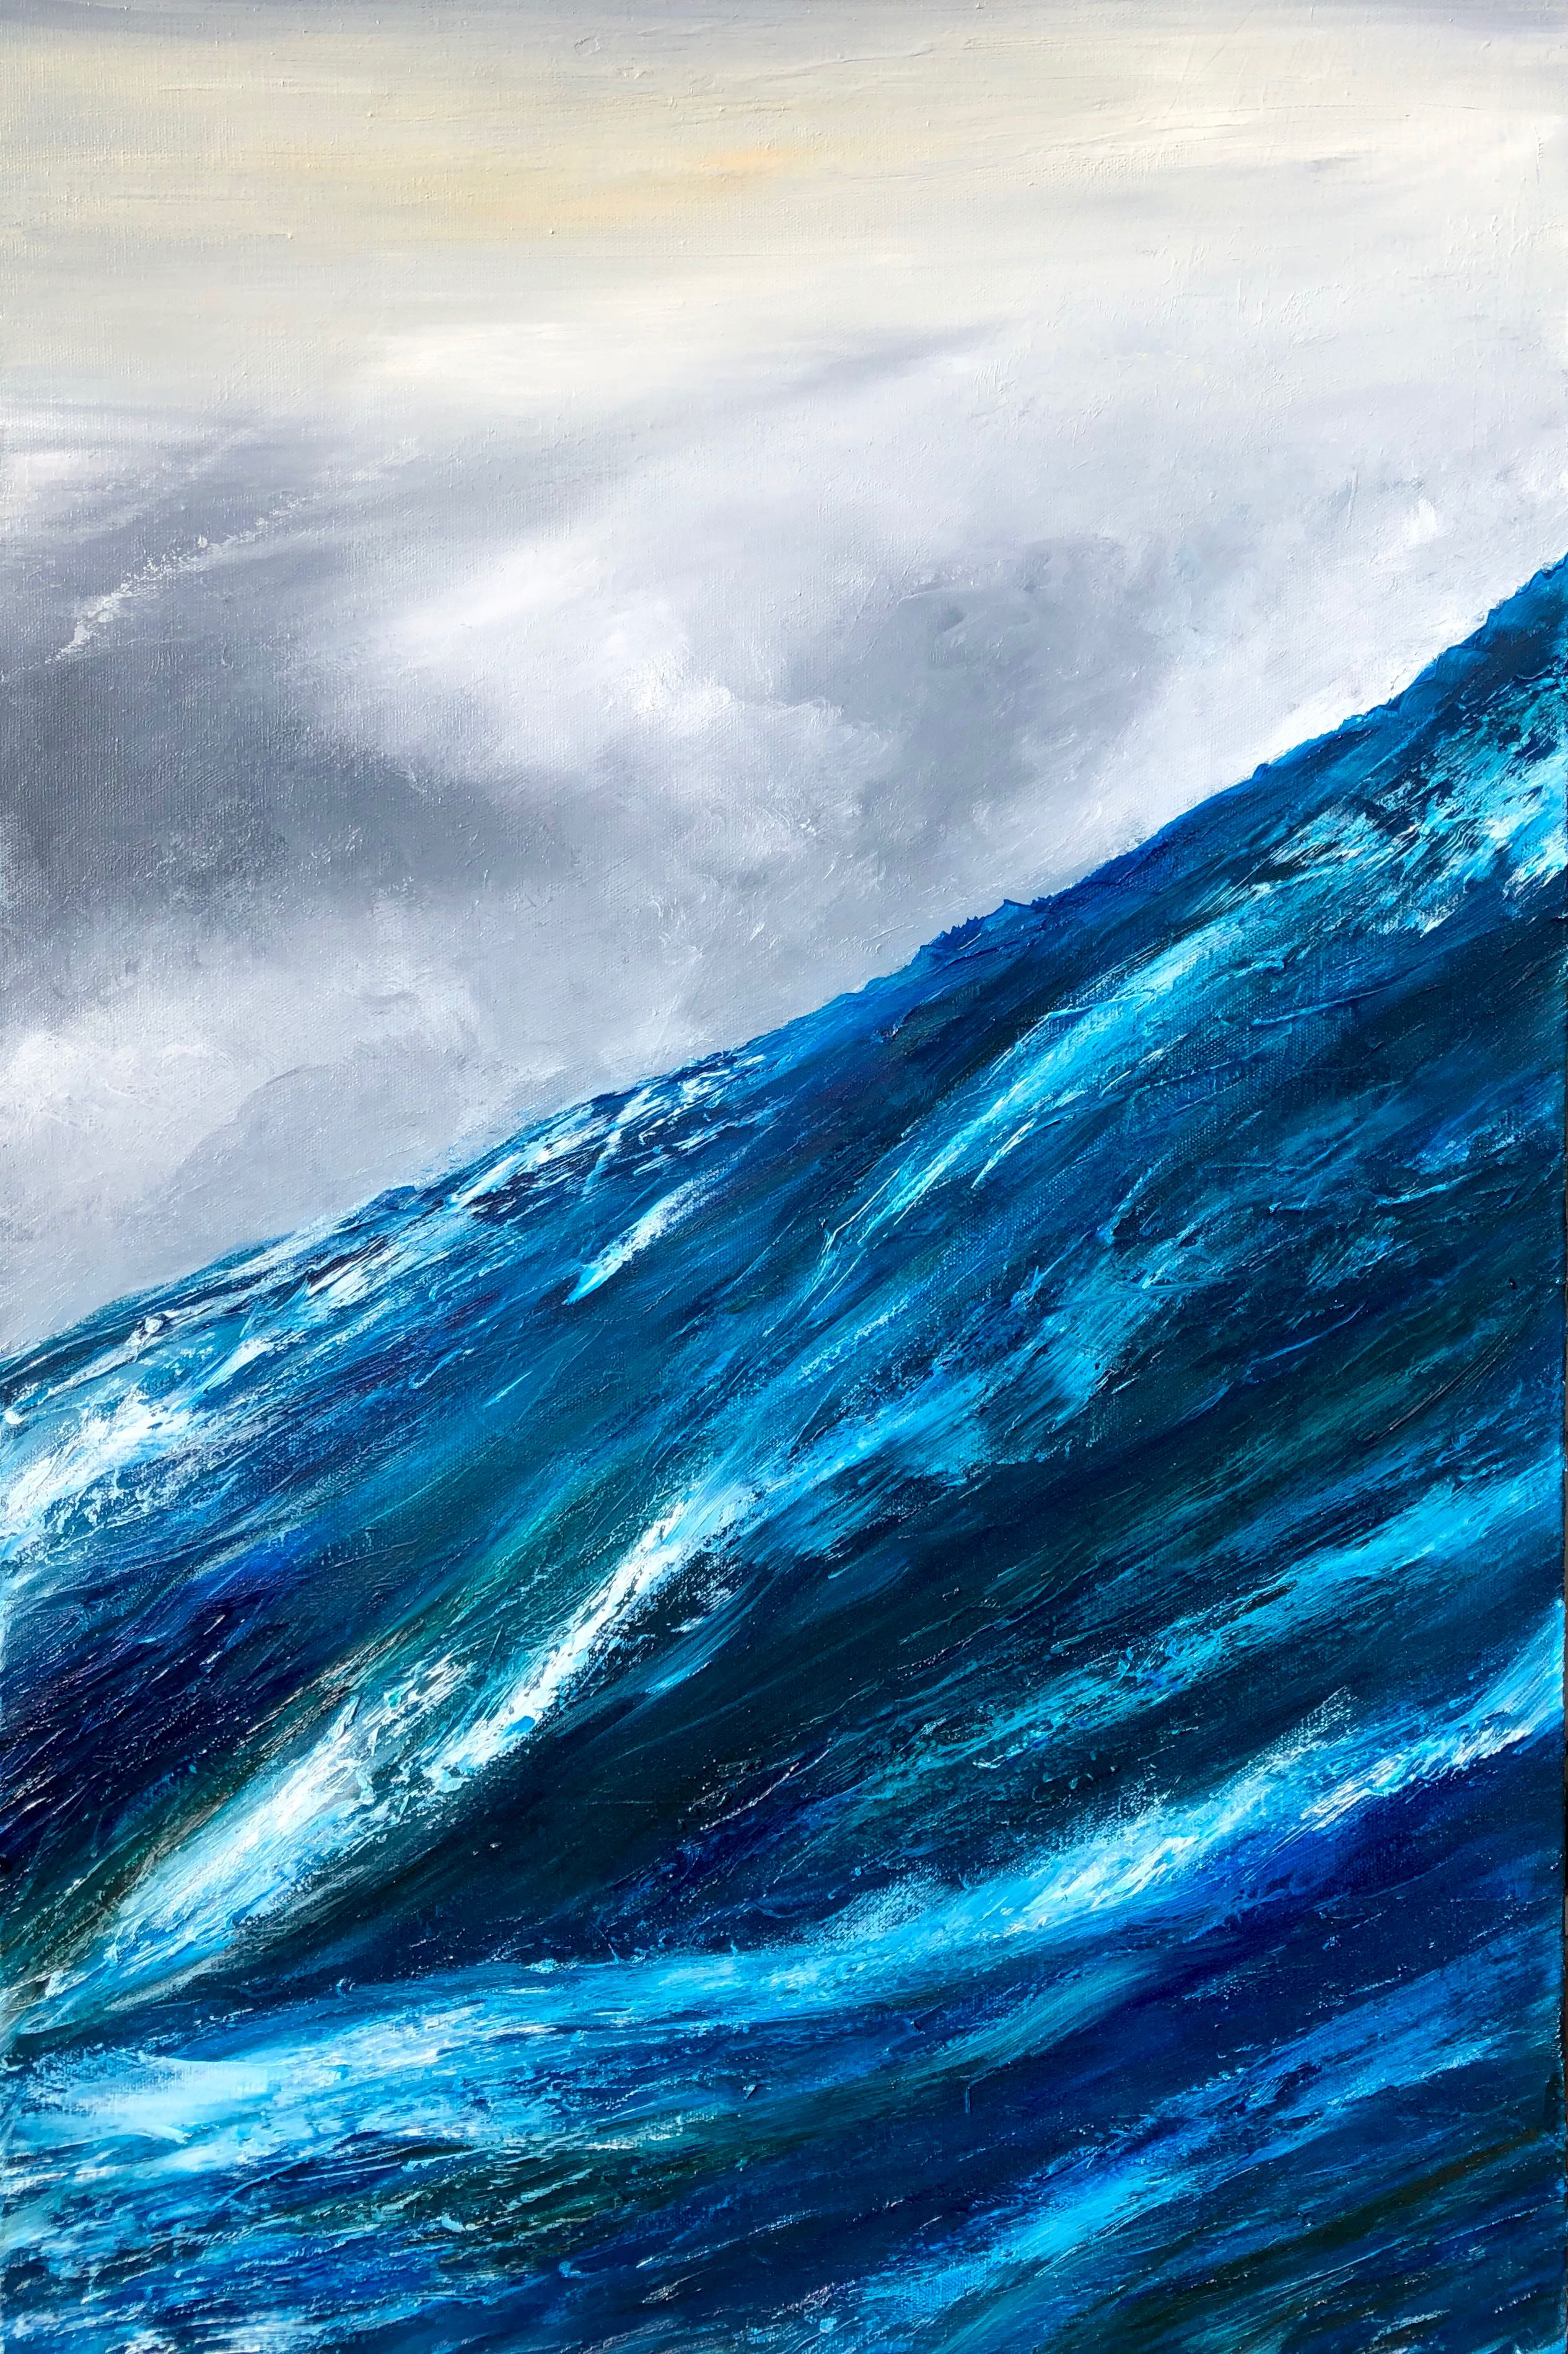 oil on canvas of a blue wave in a stormy sea